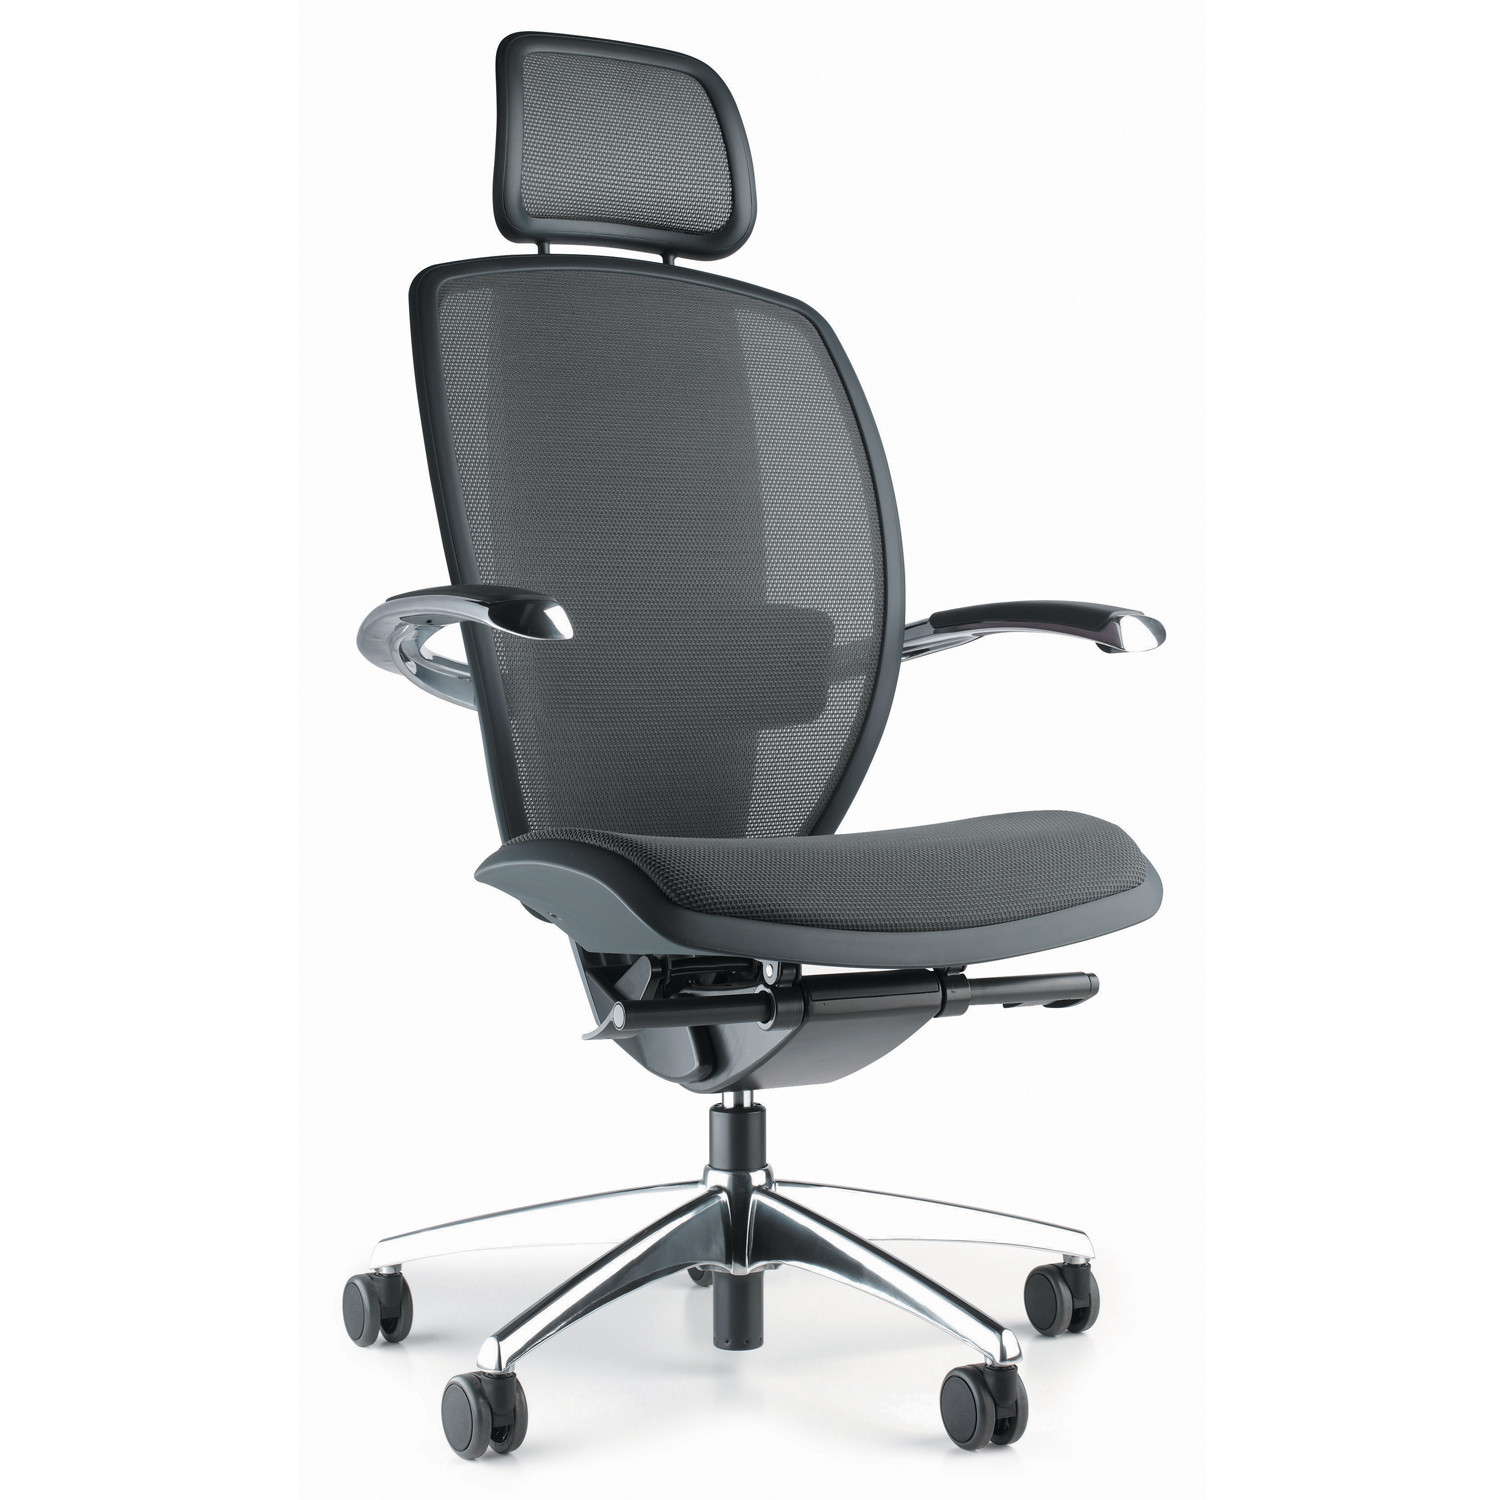 Pininfarina Xten Executive Office Chair